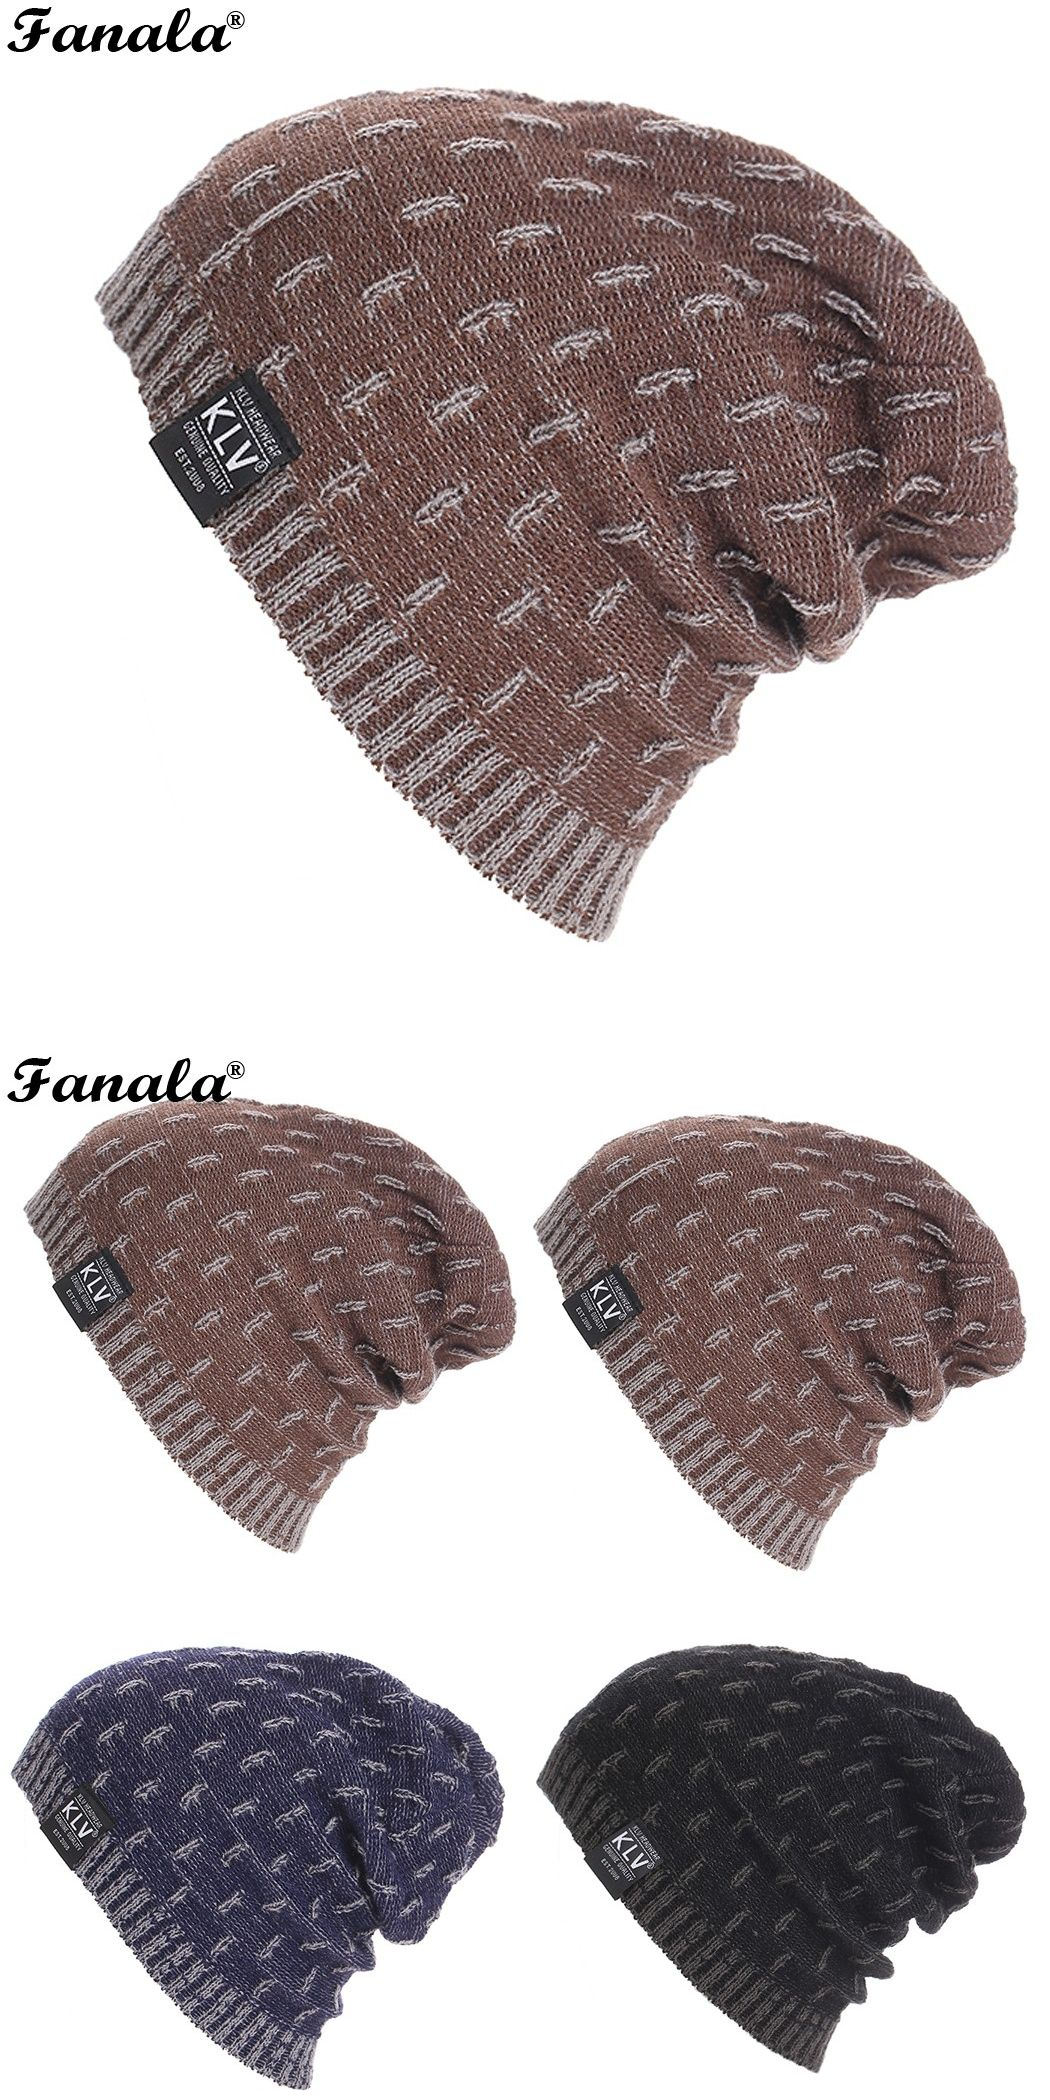 Mens Unisex Skullies Winter Hat Beanies Knitted Ski Cap Hat Hip Hop Warm  Skull Bonnet Hats 31e93100954d